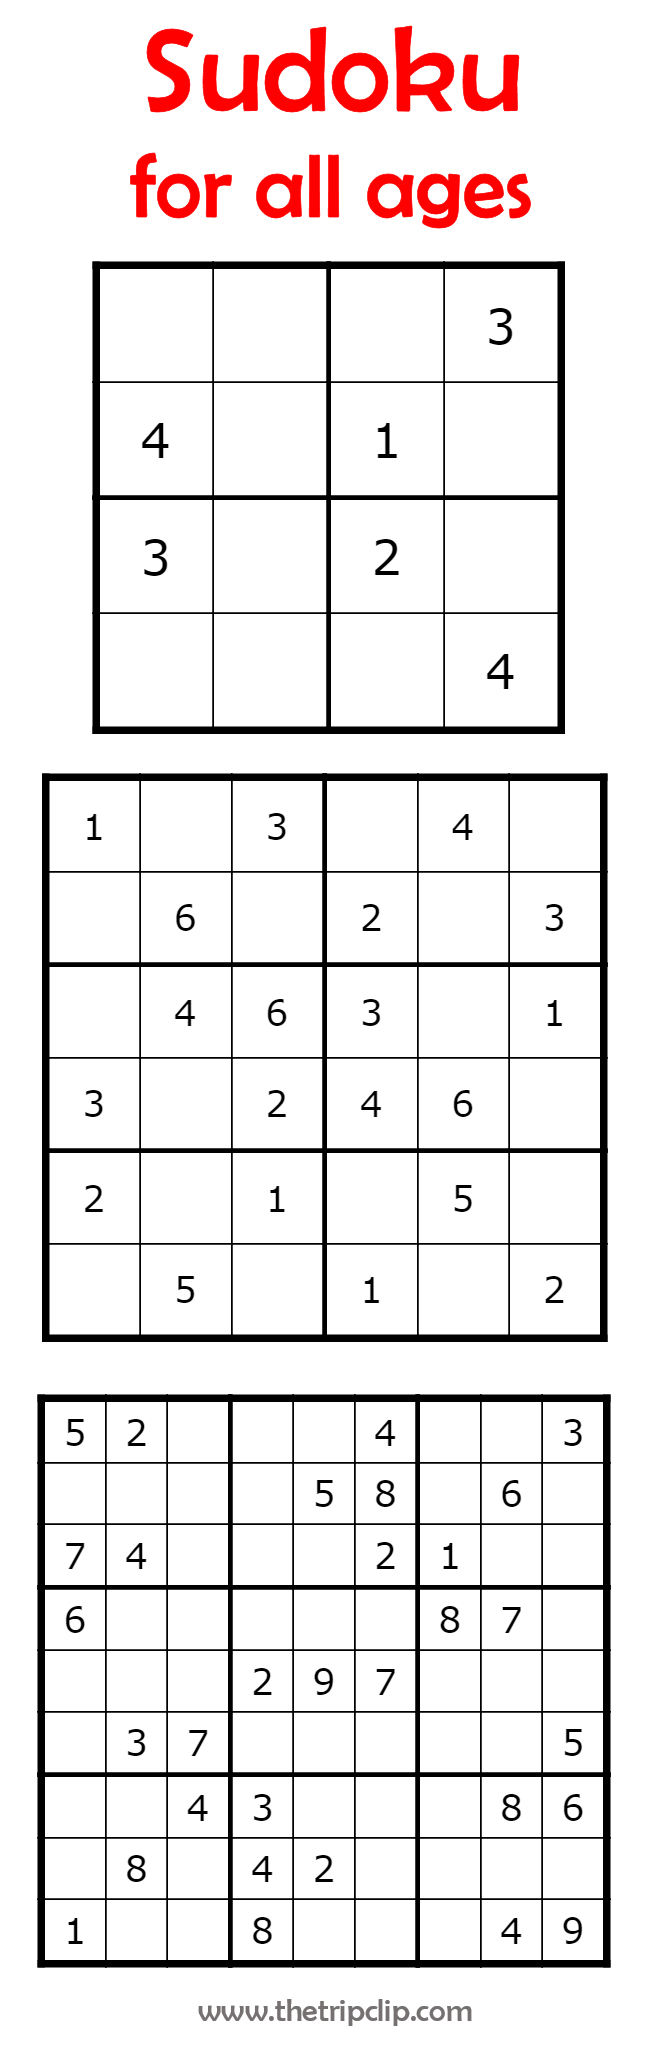 Sudoku For All Ages Plus Lots Of Other Printable Activities For Kids - Printable Kenken Puzzles 9X9